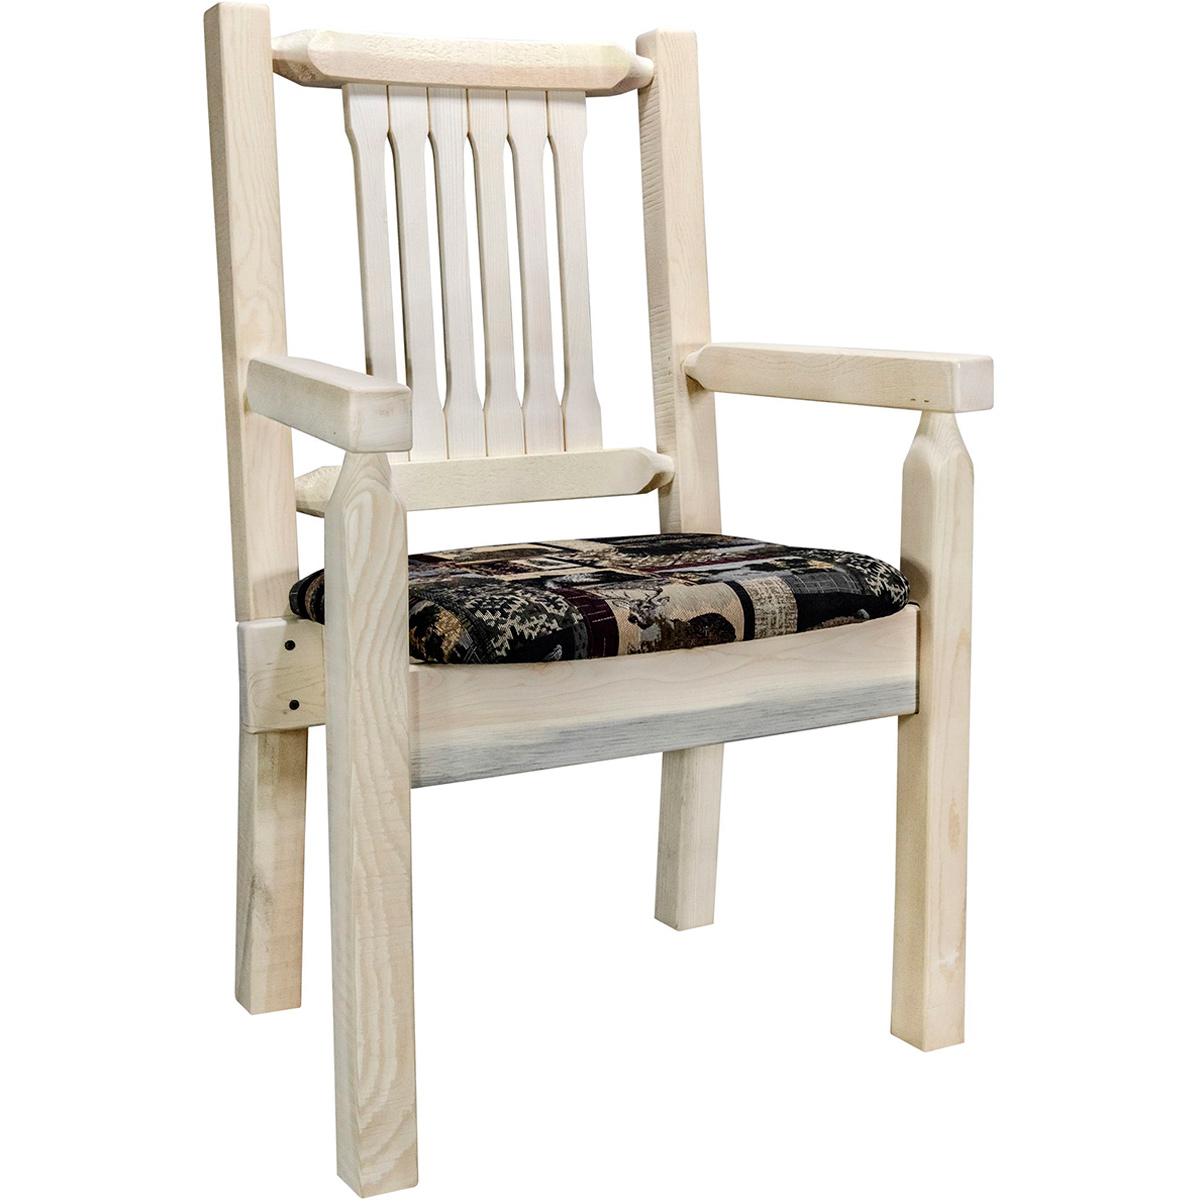 Ranchman's Captain's Chair with Woodland Upholstered Seat & Clear Lacquer Finish